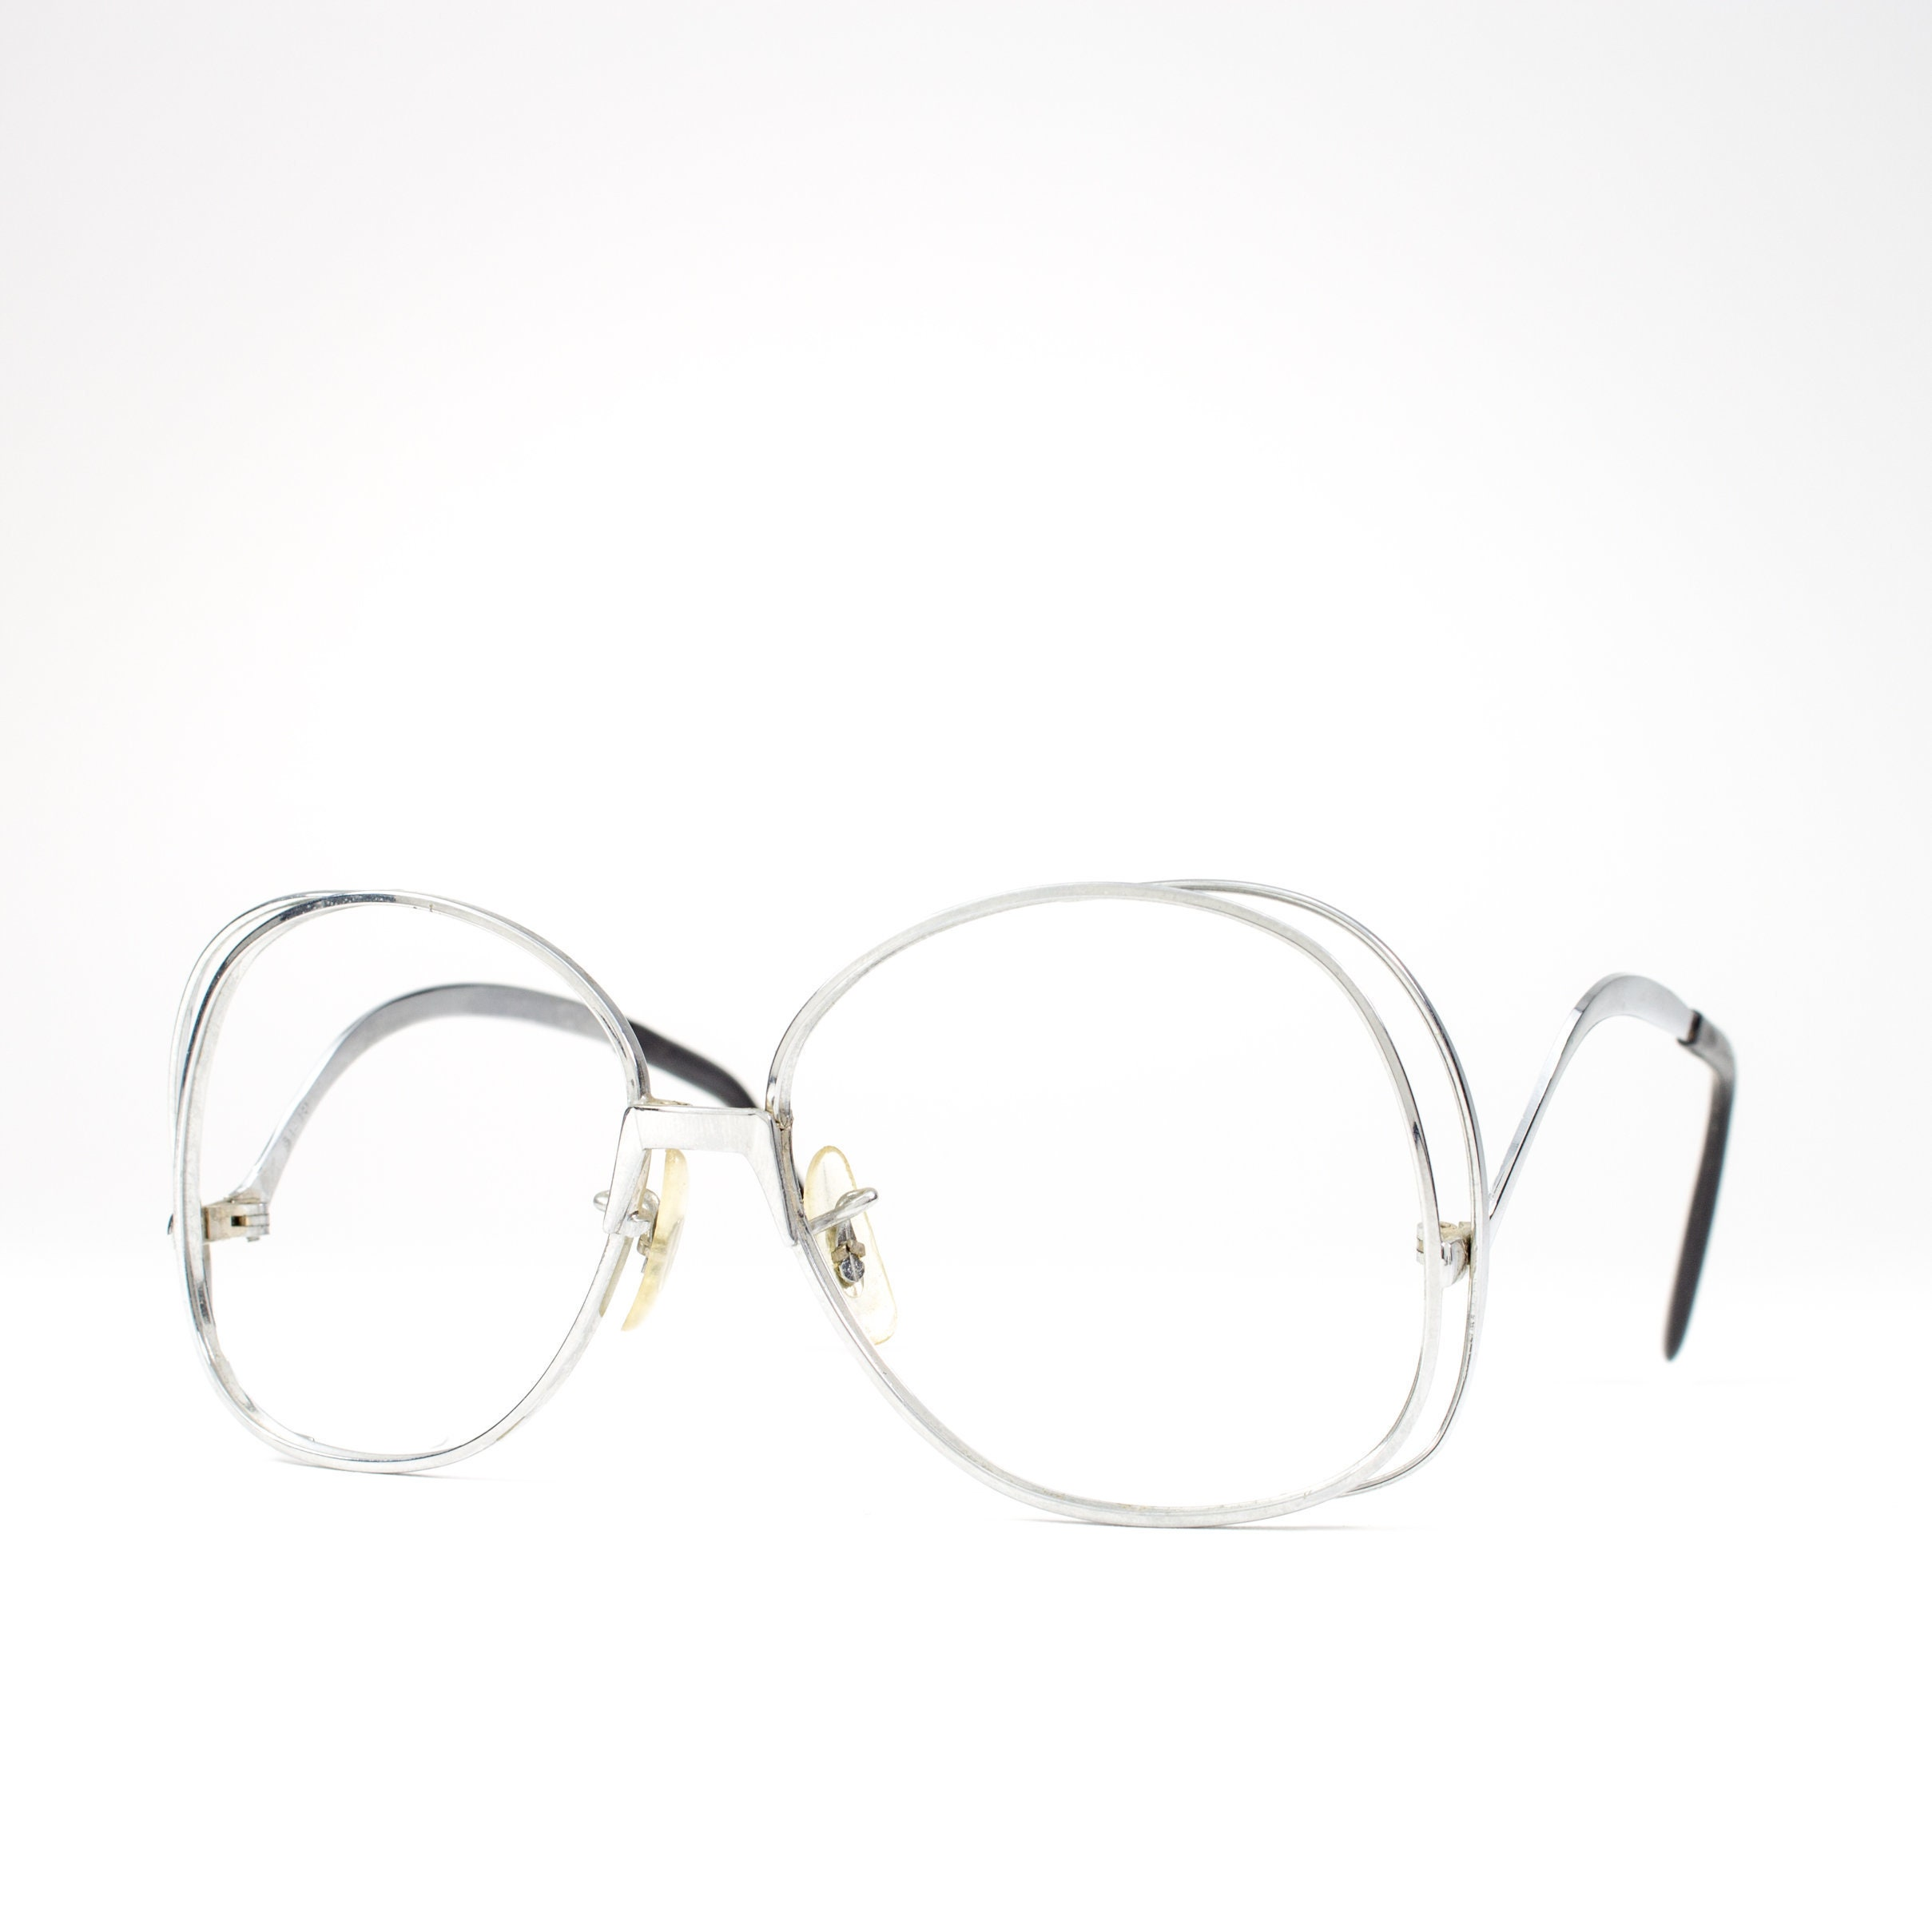 b93d014b223c Vintage glasses eyeglasses oversized glasses jpg 2418x2418 Glasses from the  80s